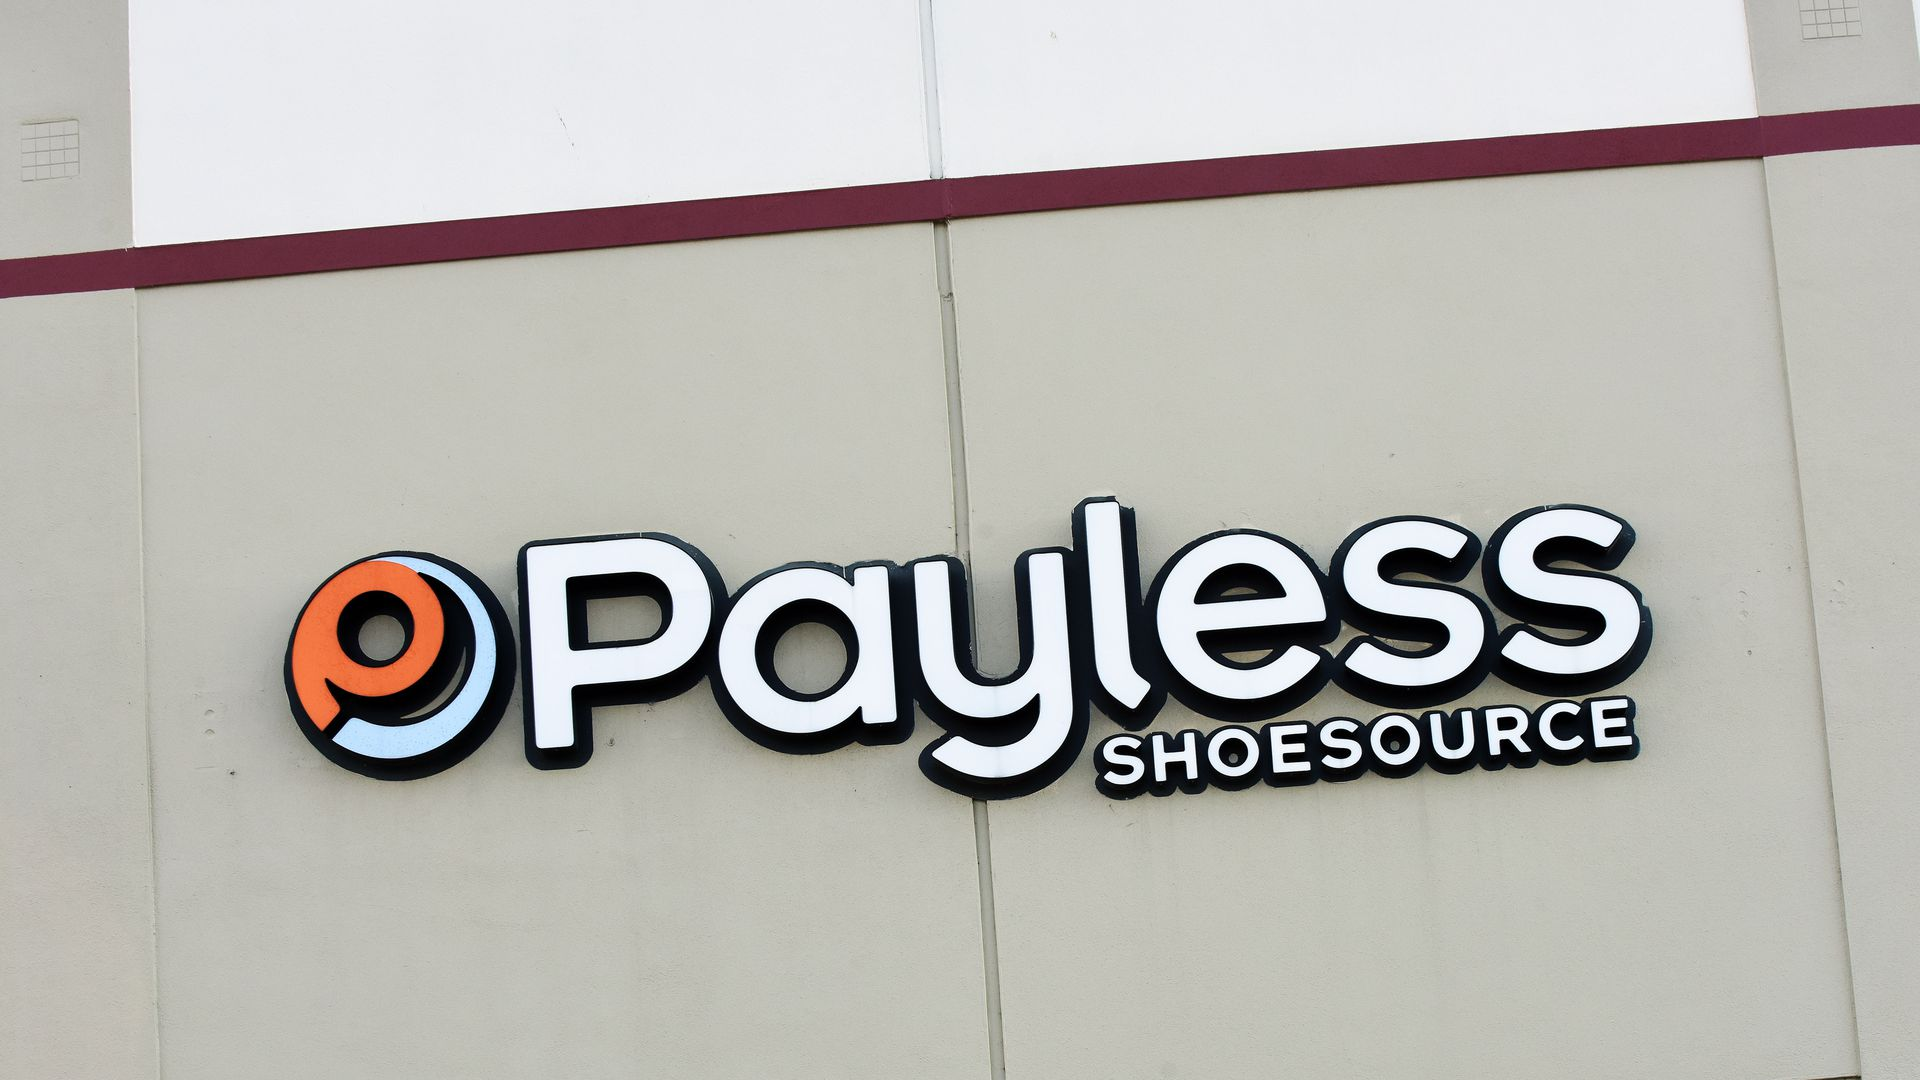 In this image, the orange and white storefront sign for Payless ShoeSource is visible against a beige concrete wall.